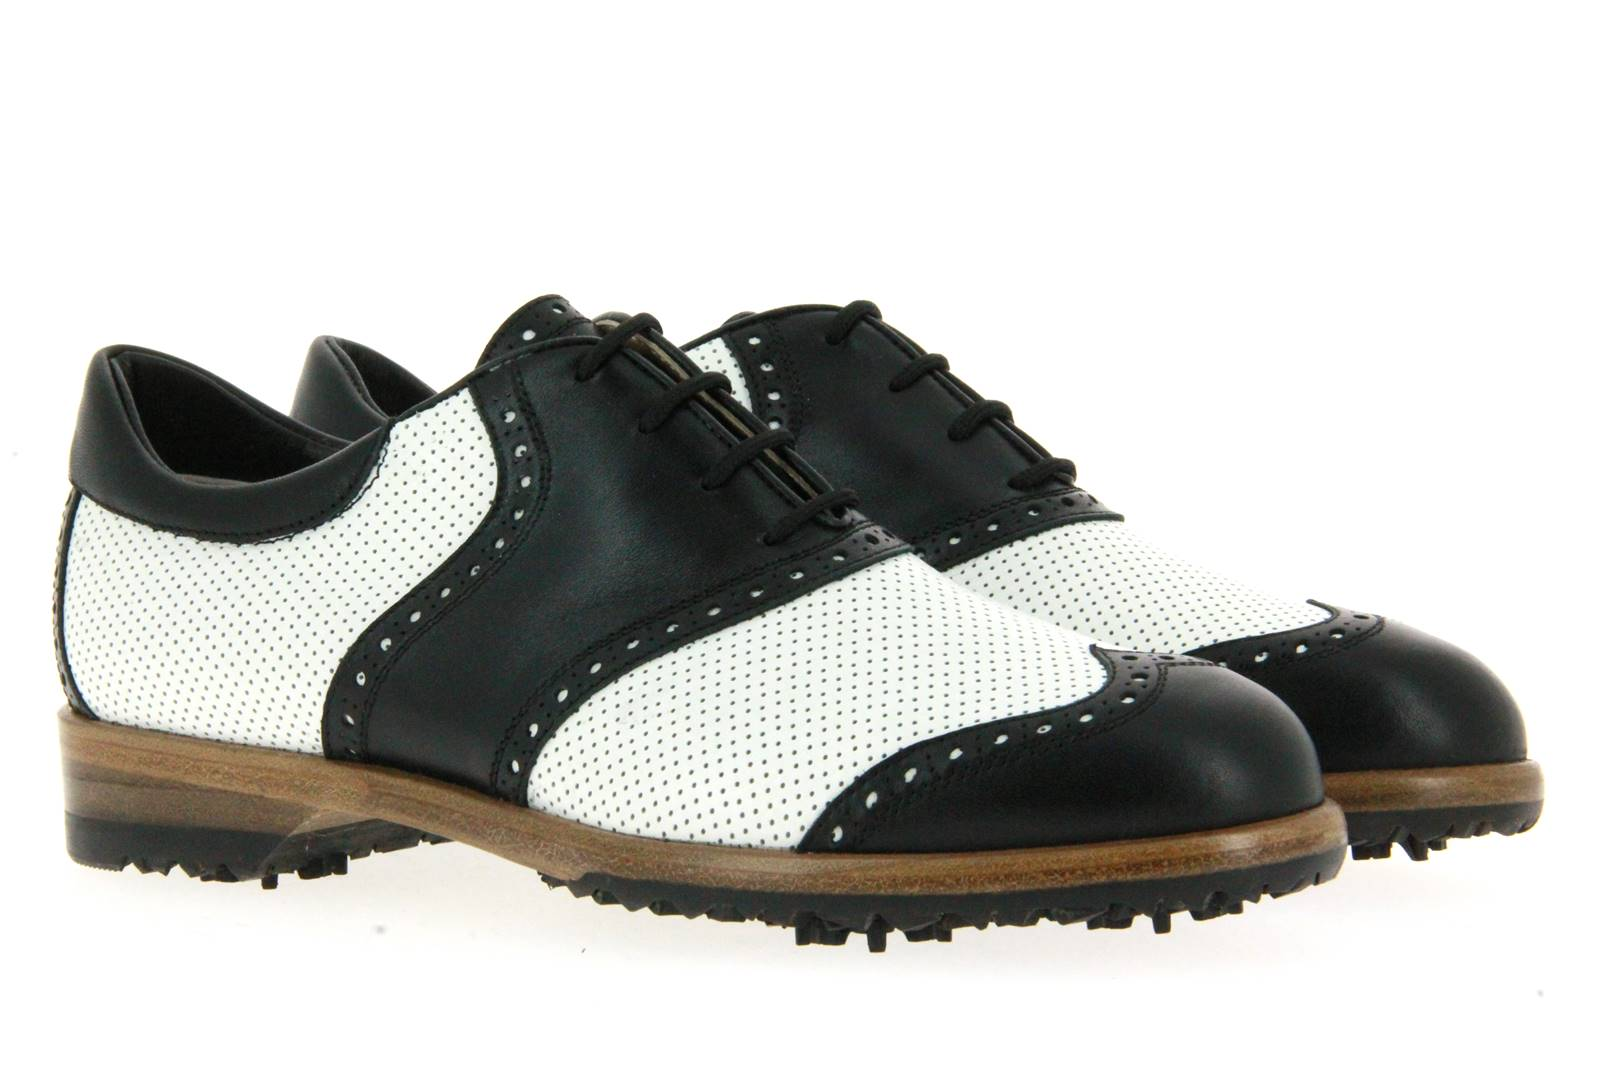 Tee Golf Shoes women's - golf shoe SUSY PERFORATO BIANCO NERO